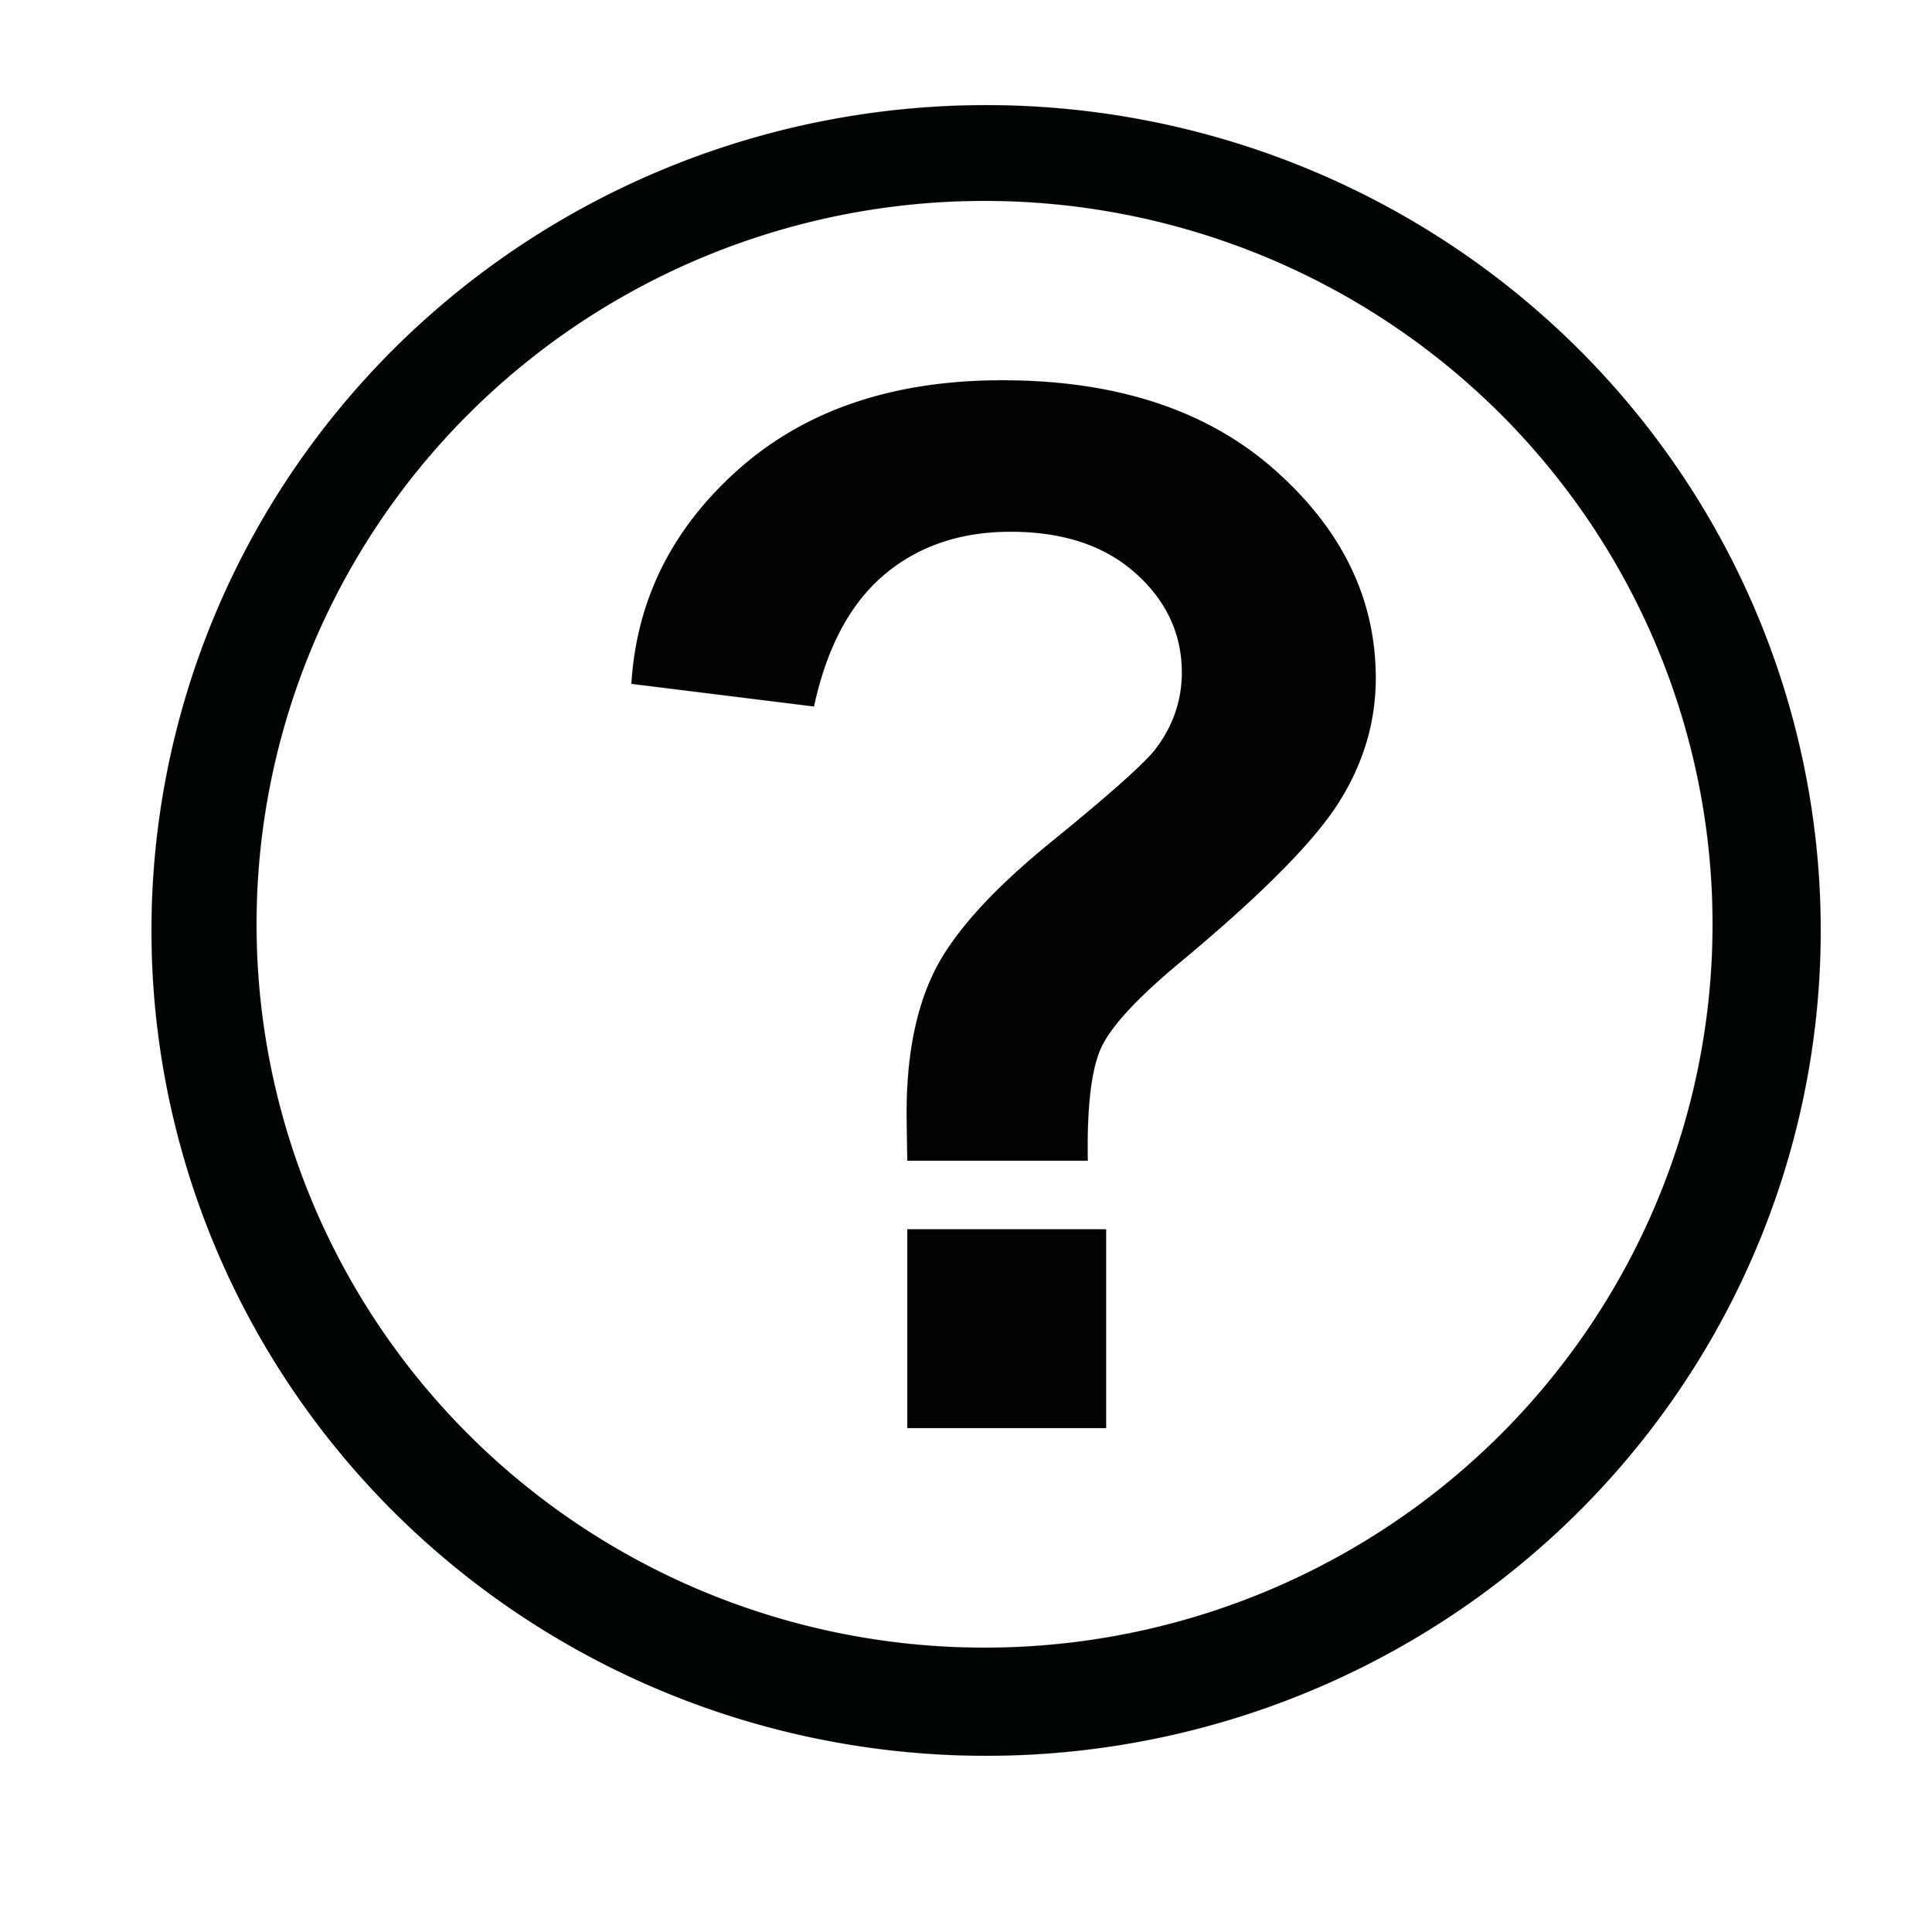 question-mark-black-and-white-Icon-round-Question_mark.jpg